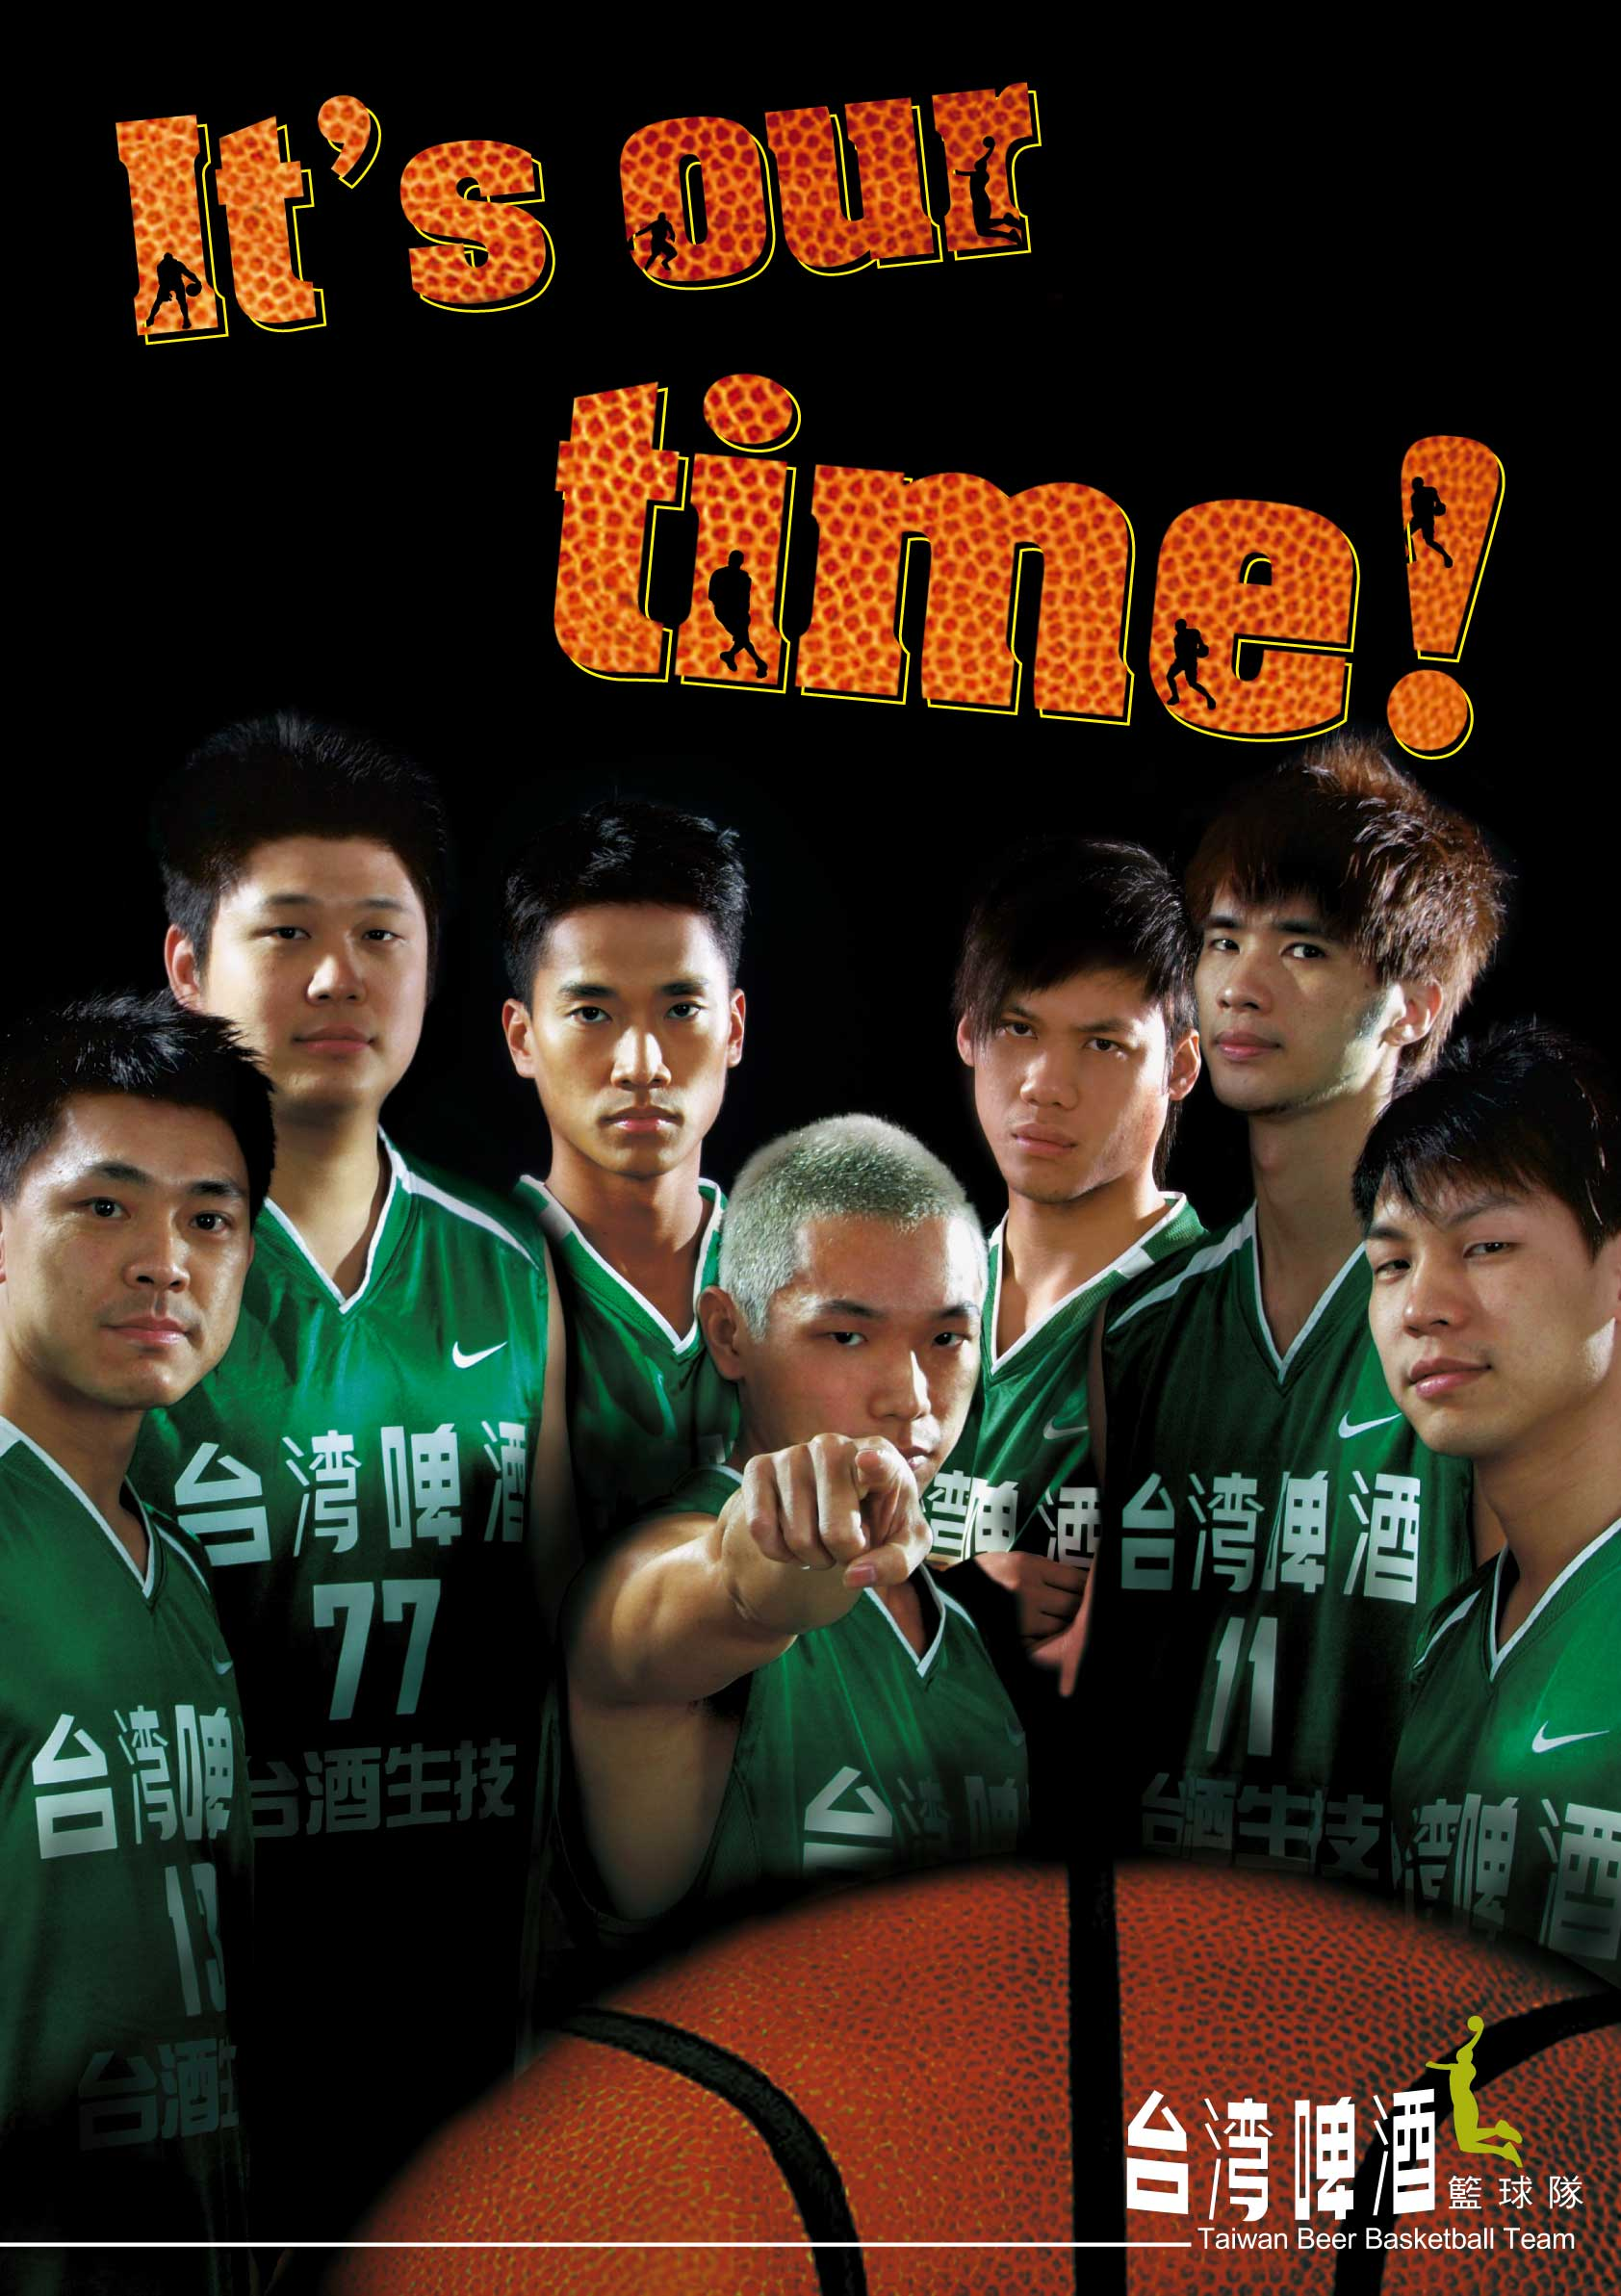 Taiwan Beer Basketball Team - Attitude Chapter